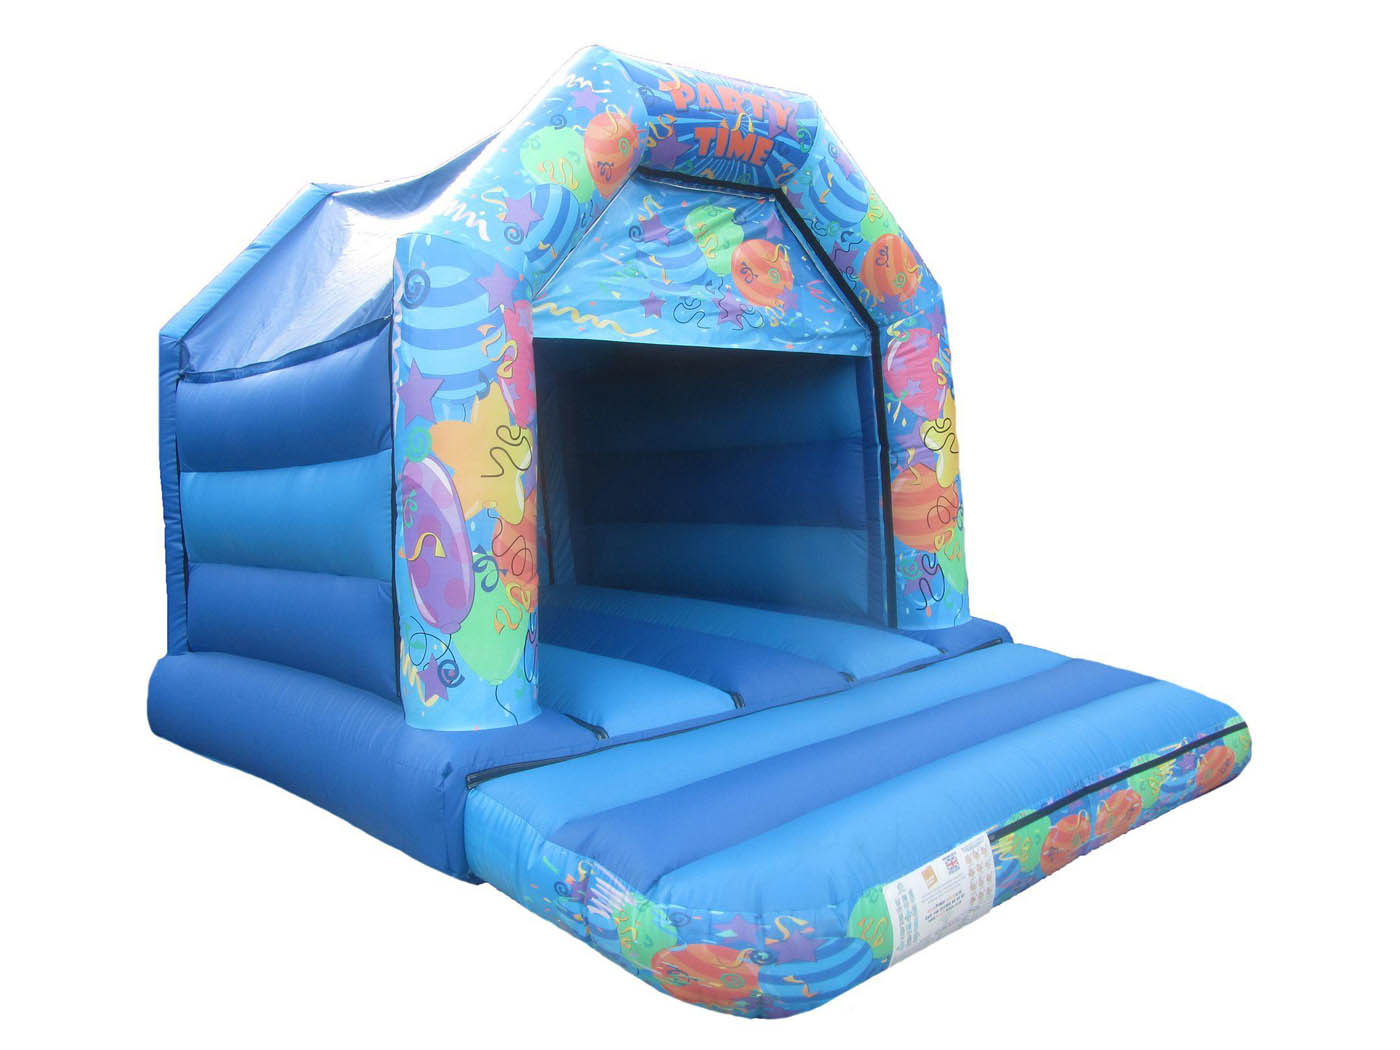 Party Themed Inflatable Bouncer